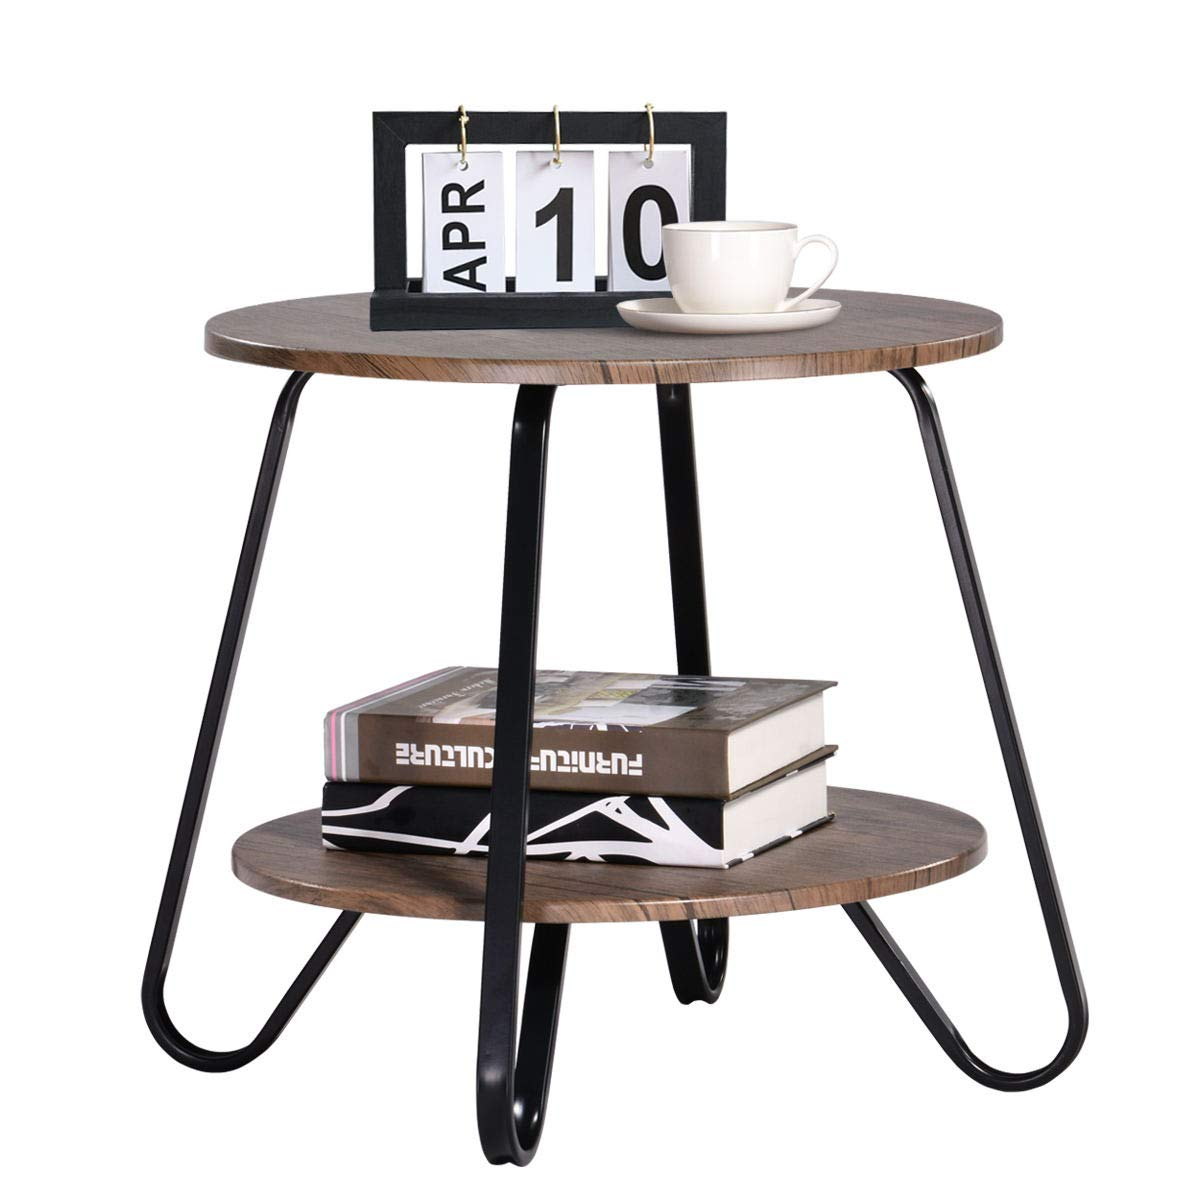 Vintage 2 Tiers Living Room End-Table Modern Industrial Nightstands for Bedroom Round Sofa Side-Table Wood Metal, Walnut by Coavas